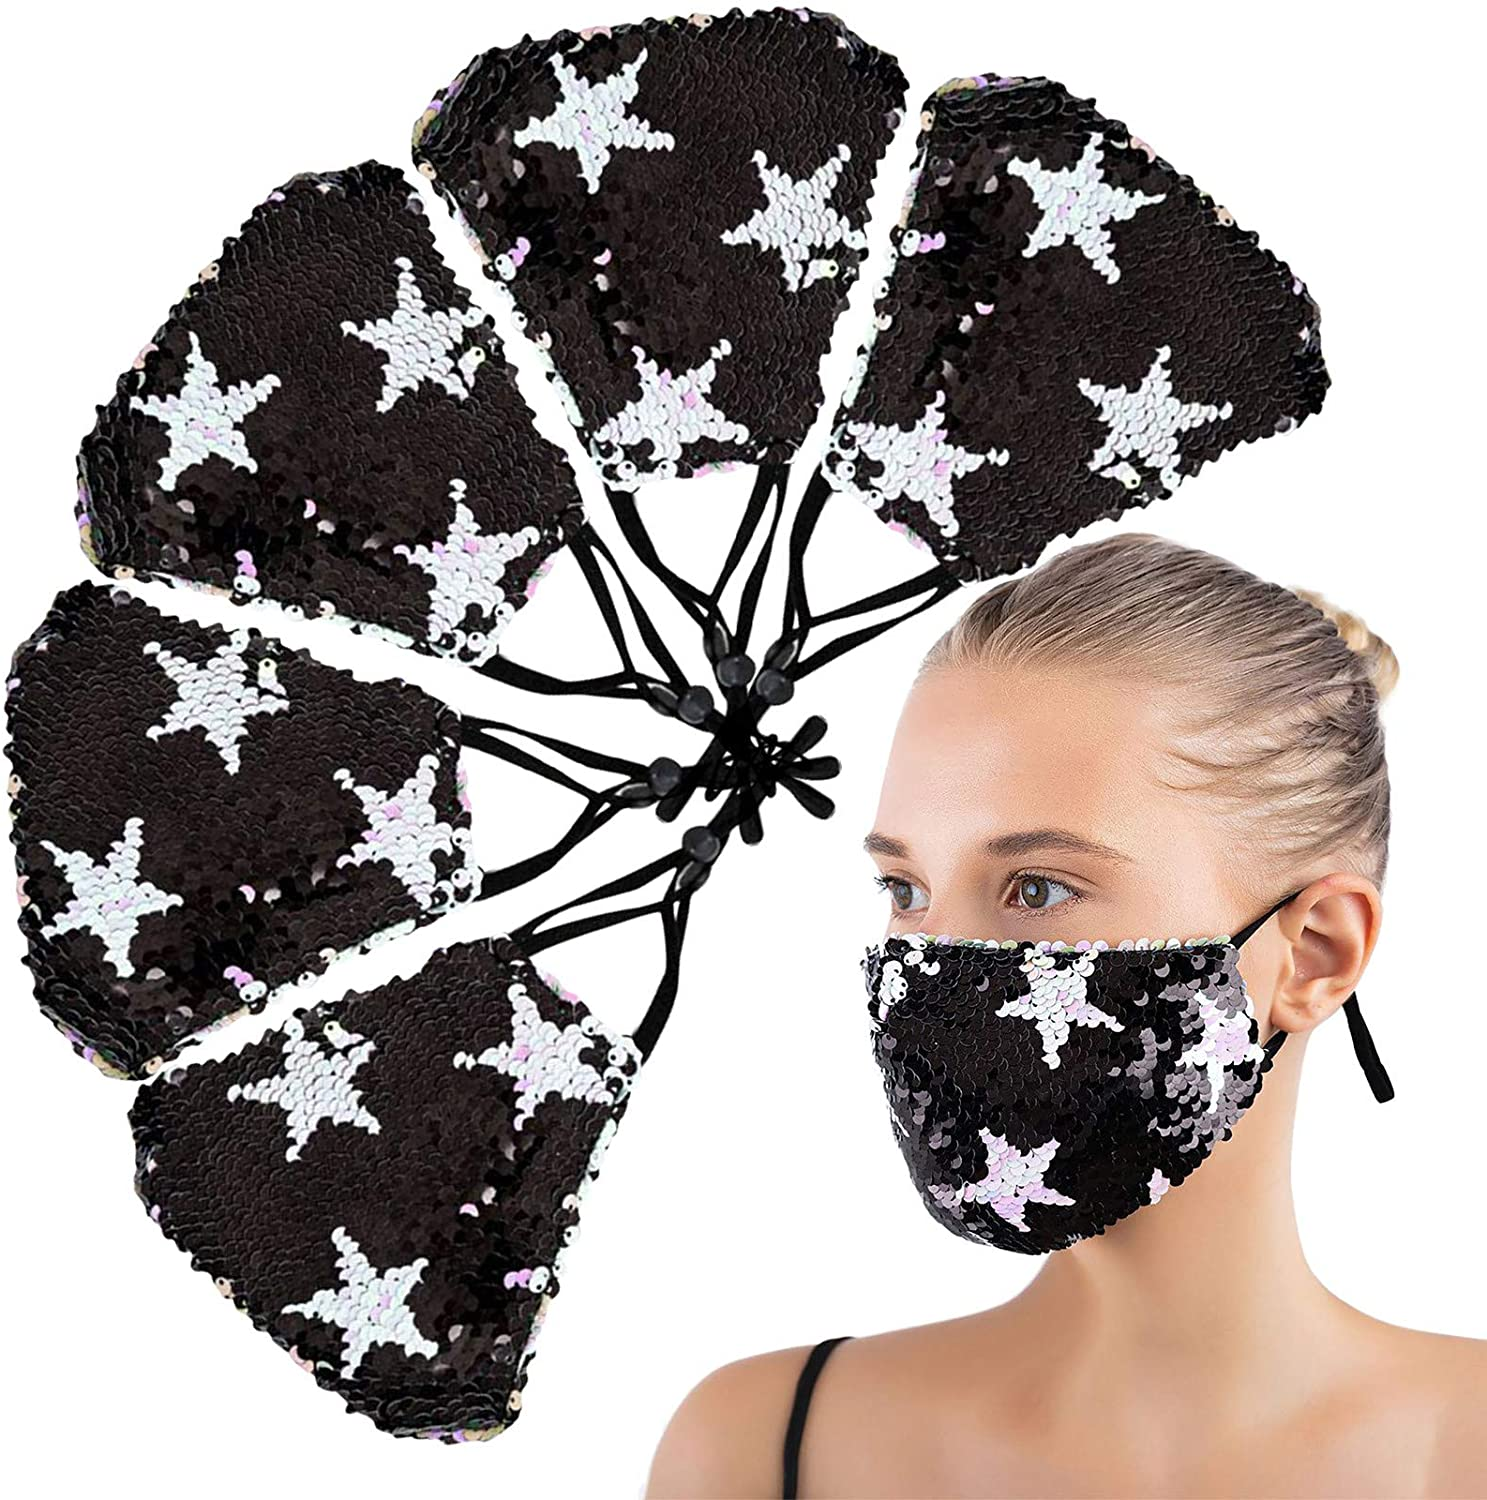 1PCS Reusablee_Face_Masks, Washable Adjustable Outdoors Sequins Face Bandanas for Unisex Adults,for Outdoor Activities